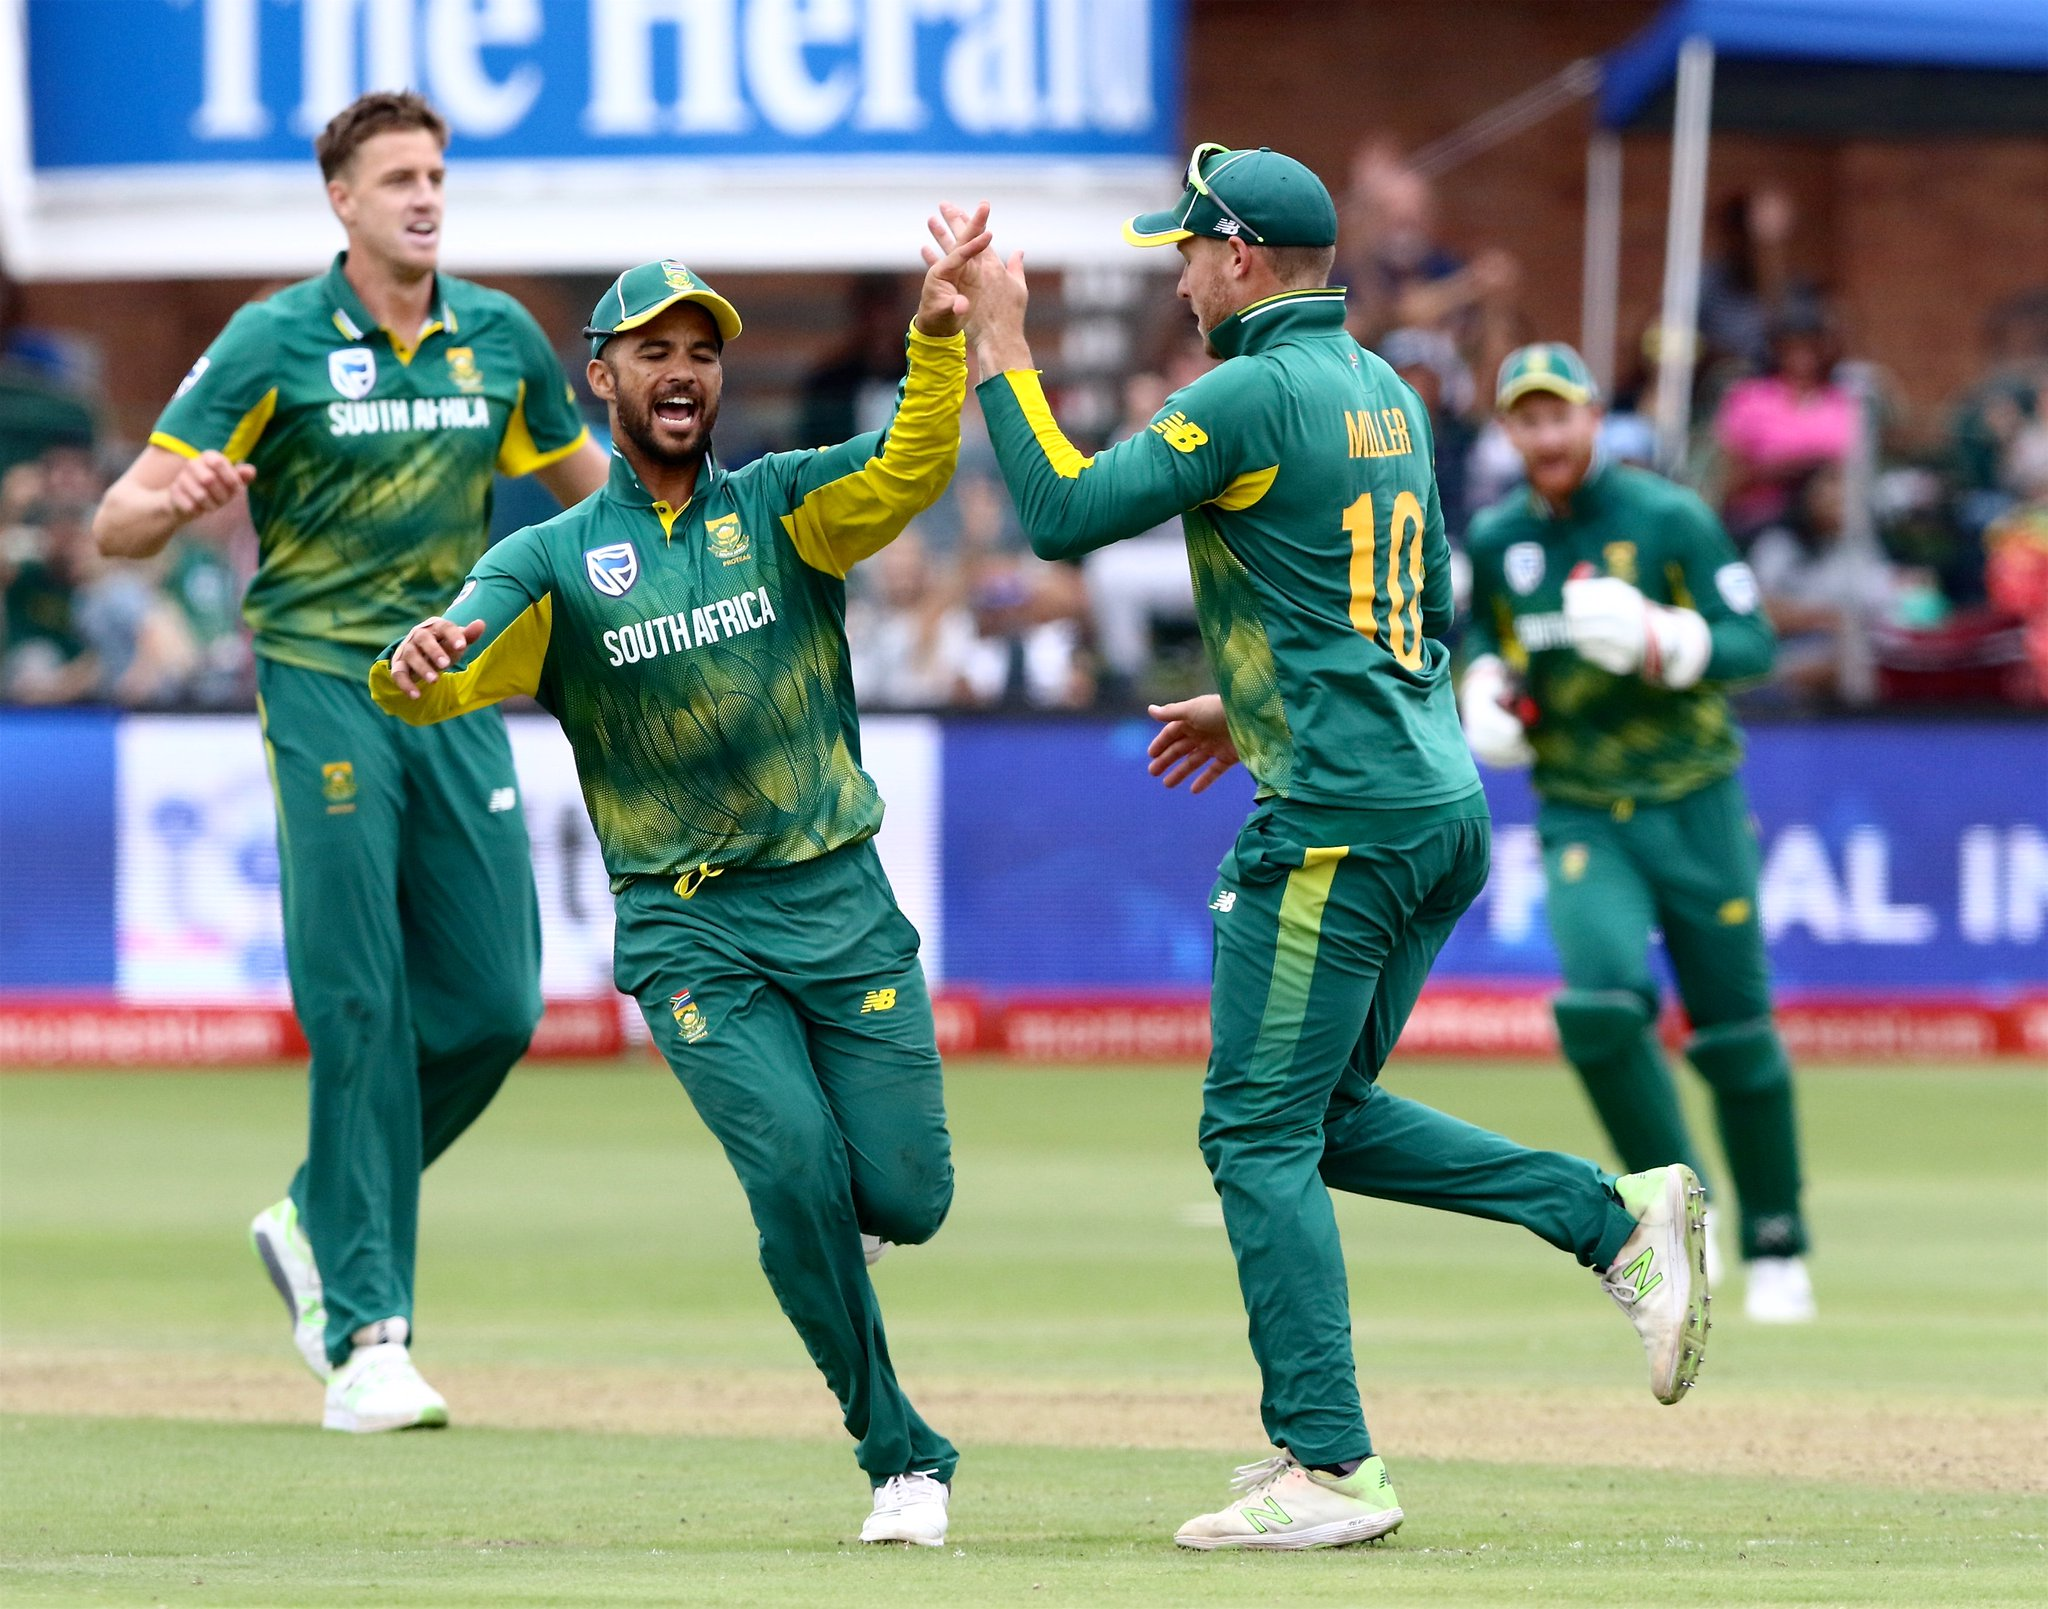 South Africa National Cricket Team Twitter Photo I Have